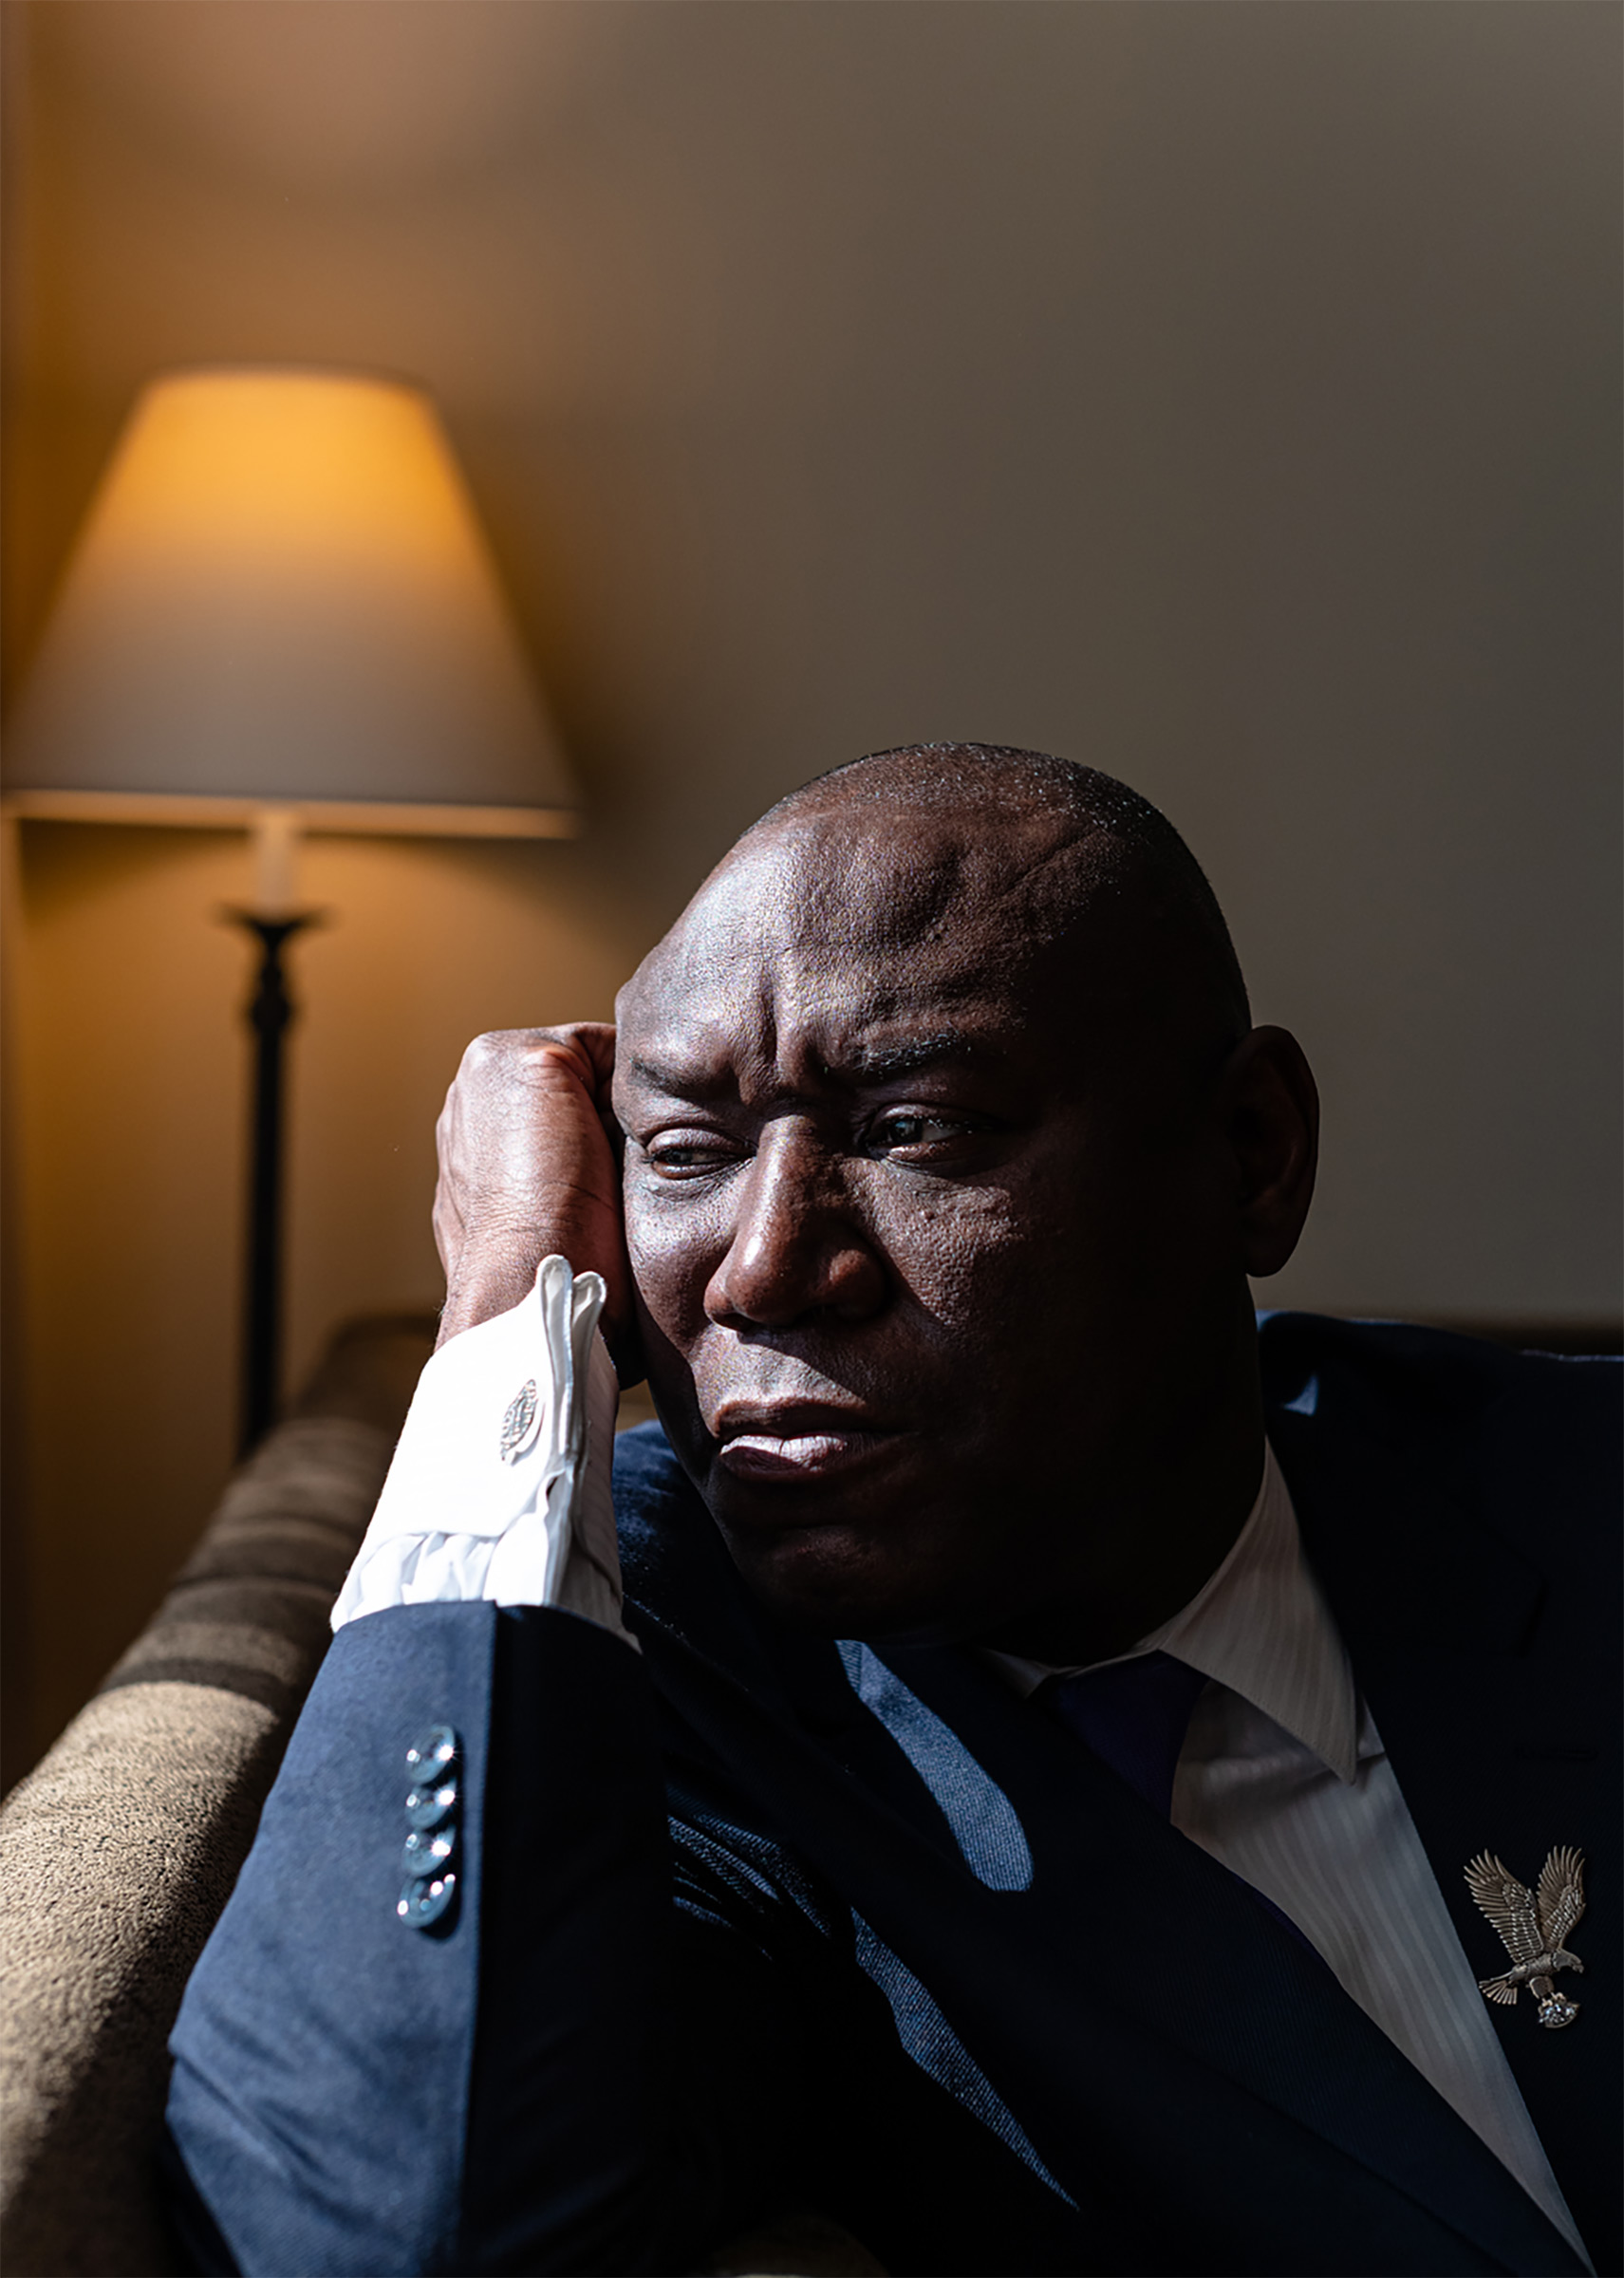 """""""Justice for George would be that the police officers who tortured him to death be held fully accountable to the full extent of the law,"""" said attorney Ben Crump on June 7, 2020, at a Houston hotel, while waiting for George Floyd's extended family to arrive for his funeral."""